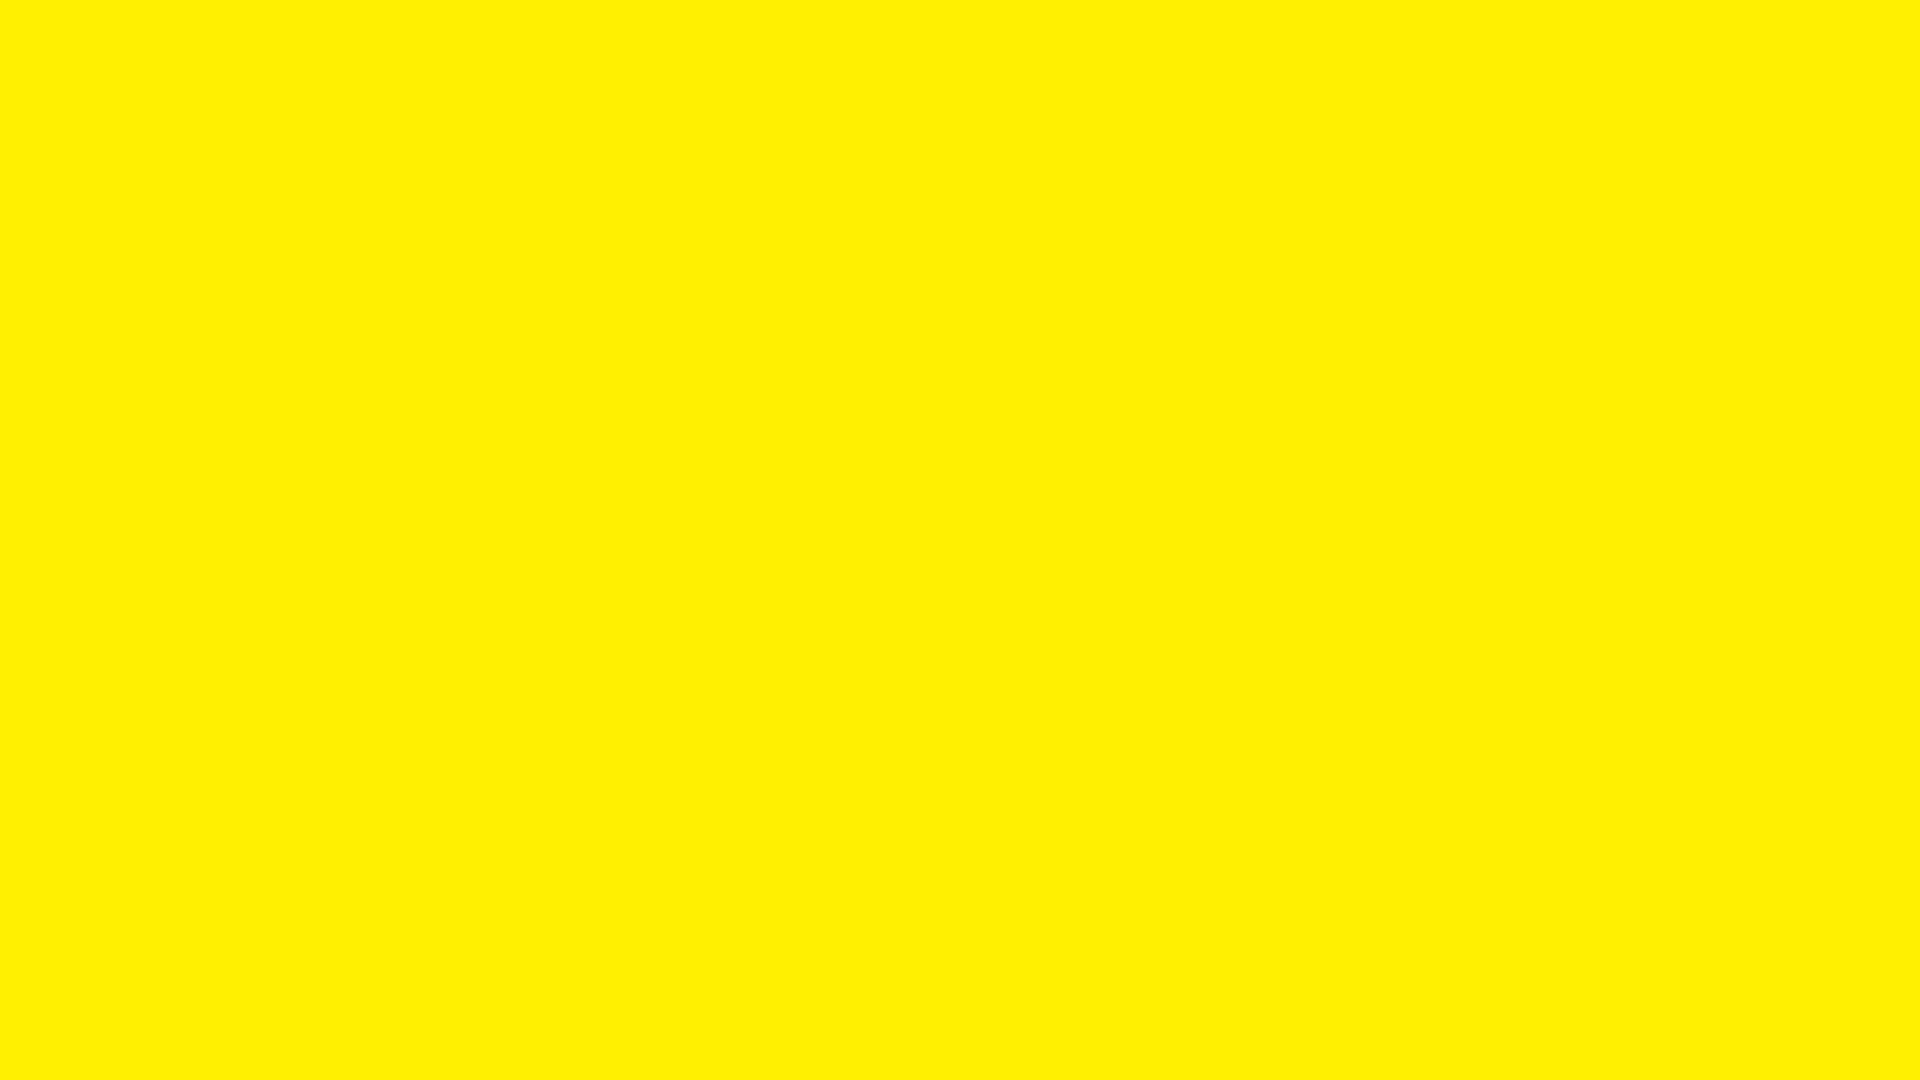 1920x1080 Yellow Process Solid Color Background